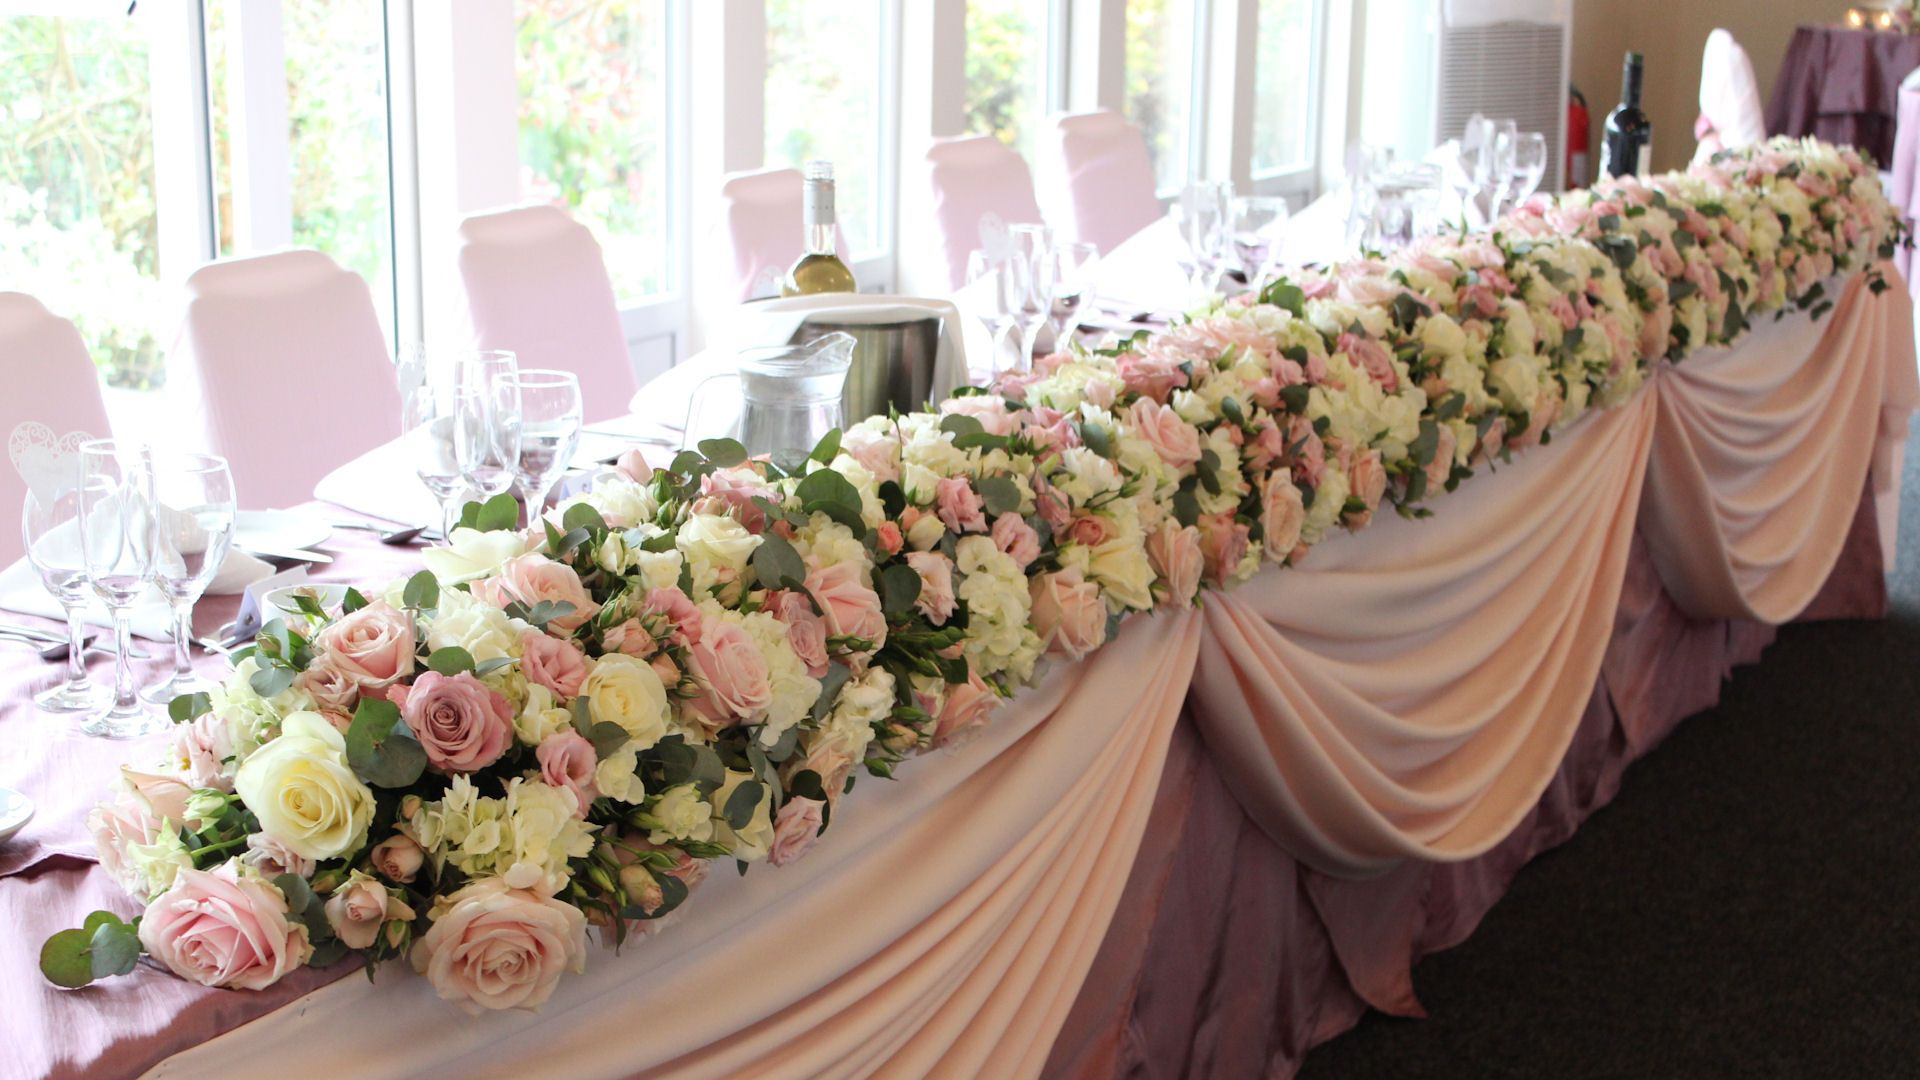 Top Table with Dusky Pink | Wedding top table, Table flower ...